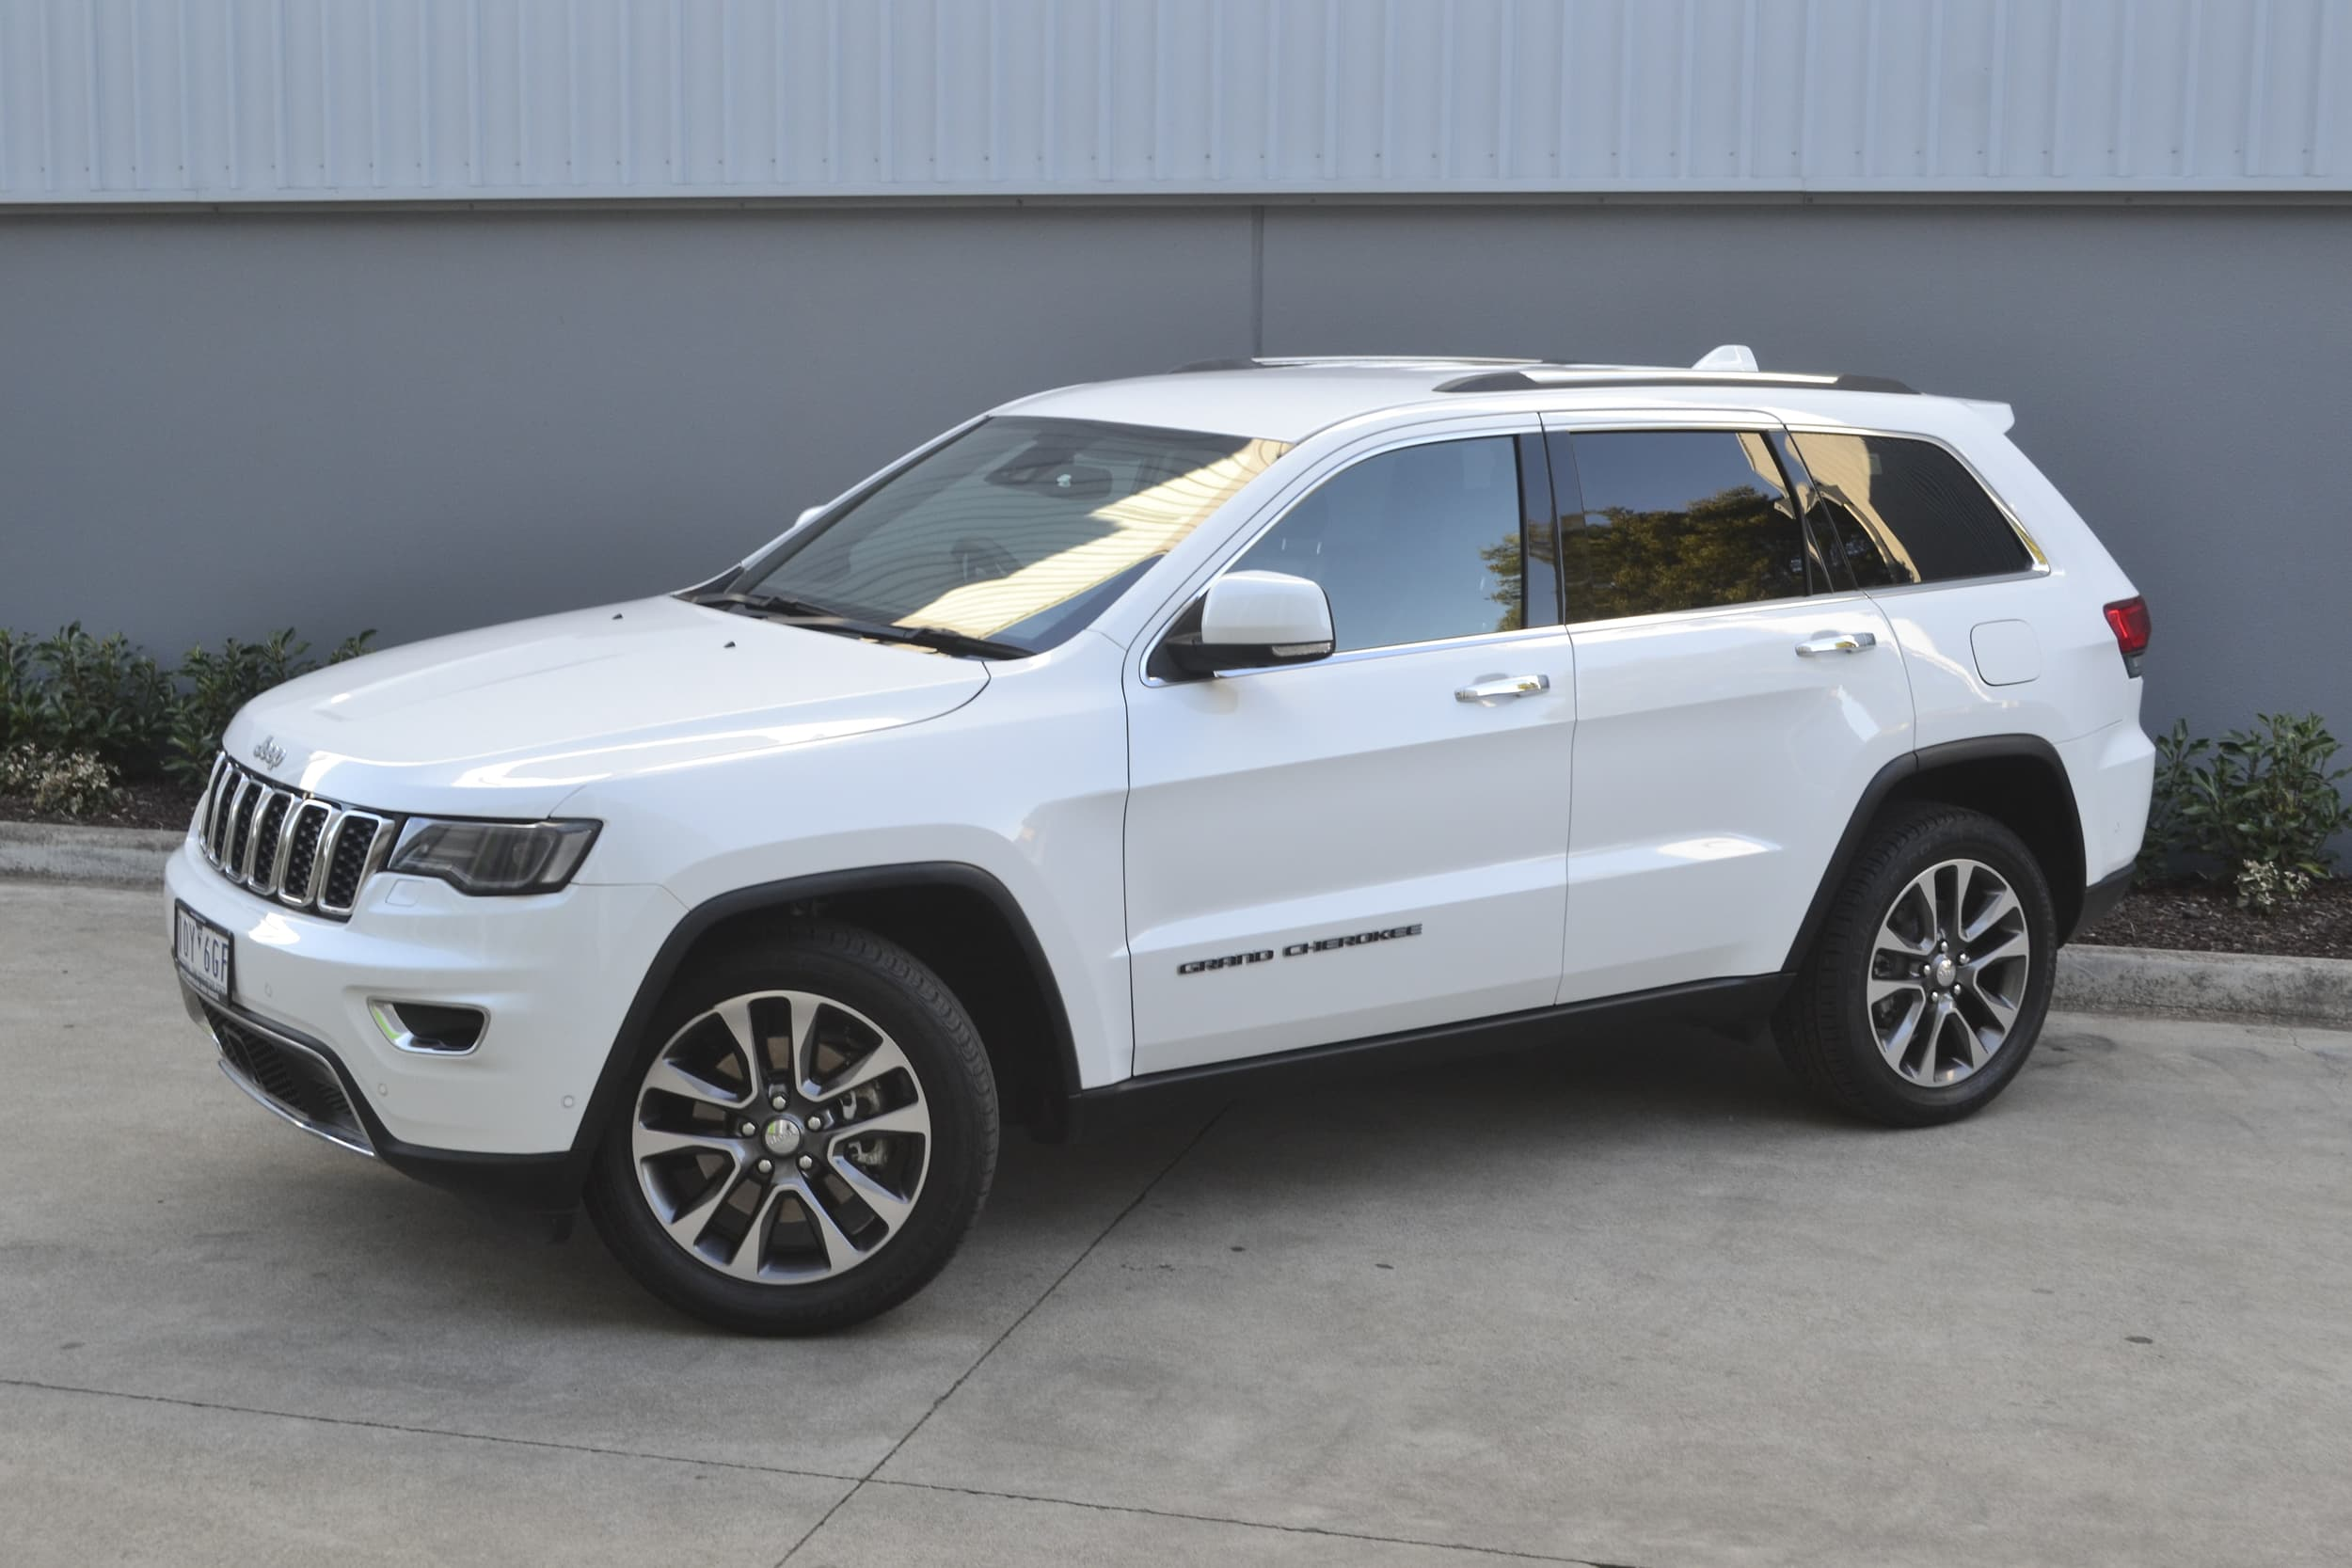 2019 Jeep Grand Cherokee Limited Auto 4x4 MY19 - image 17